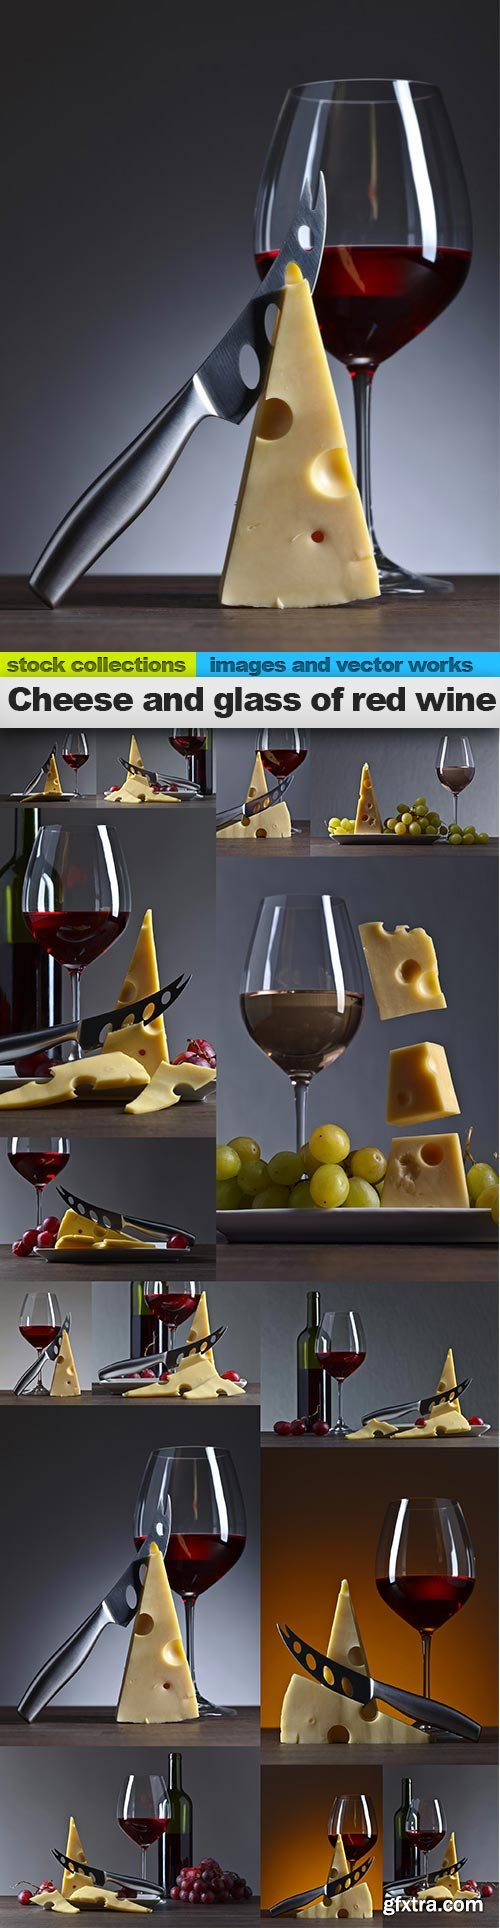 Cheese and glass of red wine, 15 x UHQ JPEG